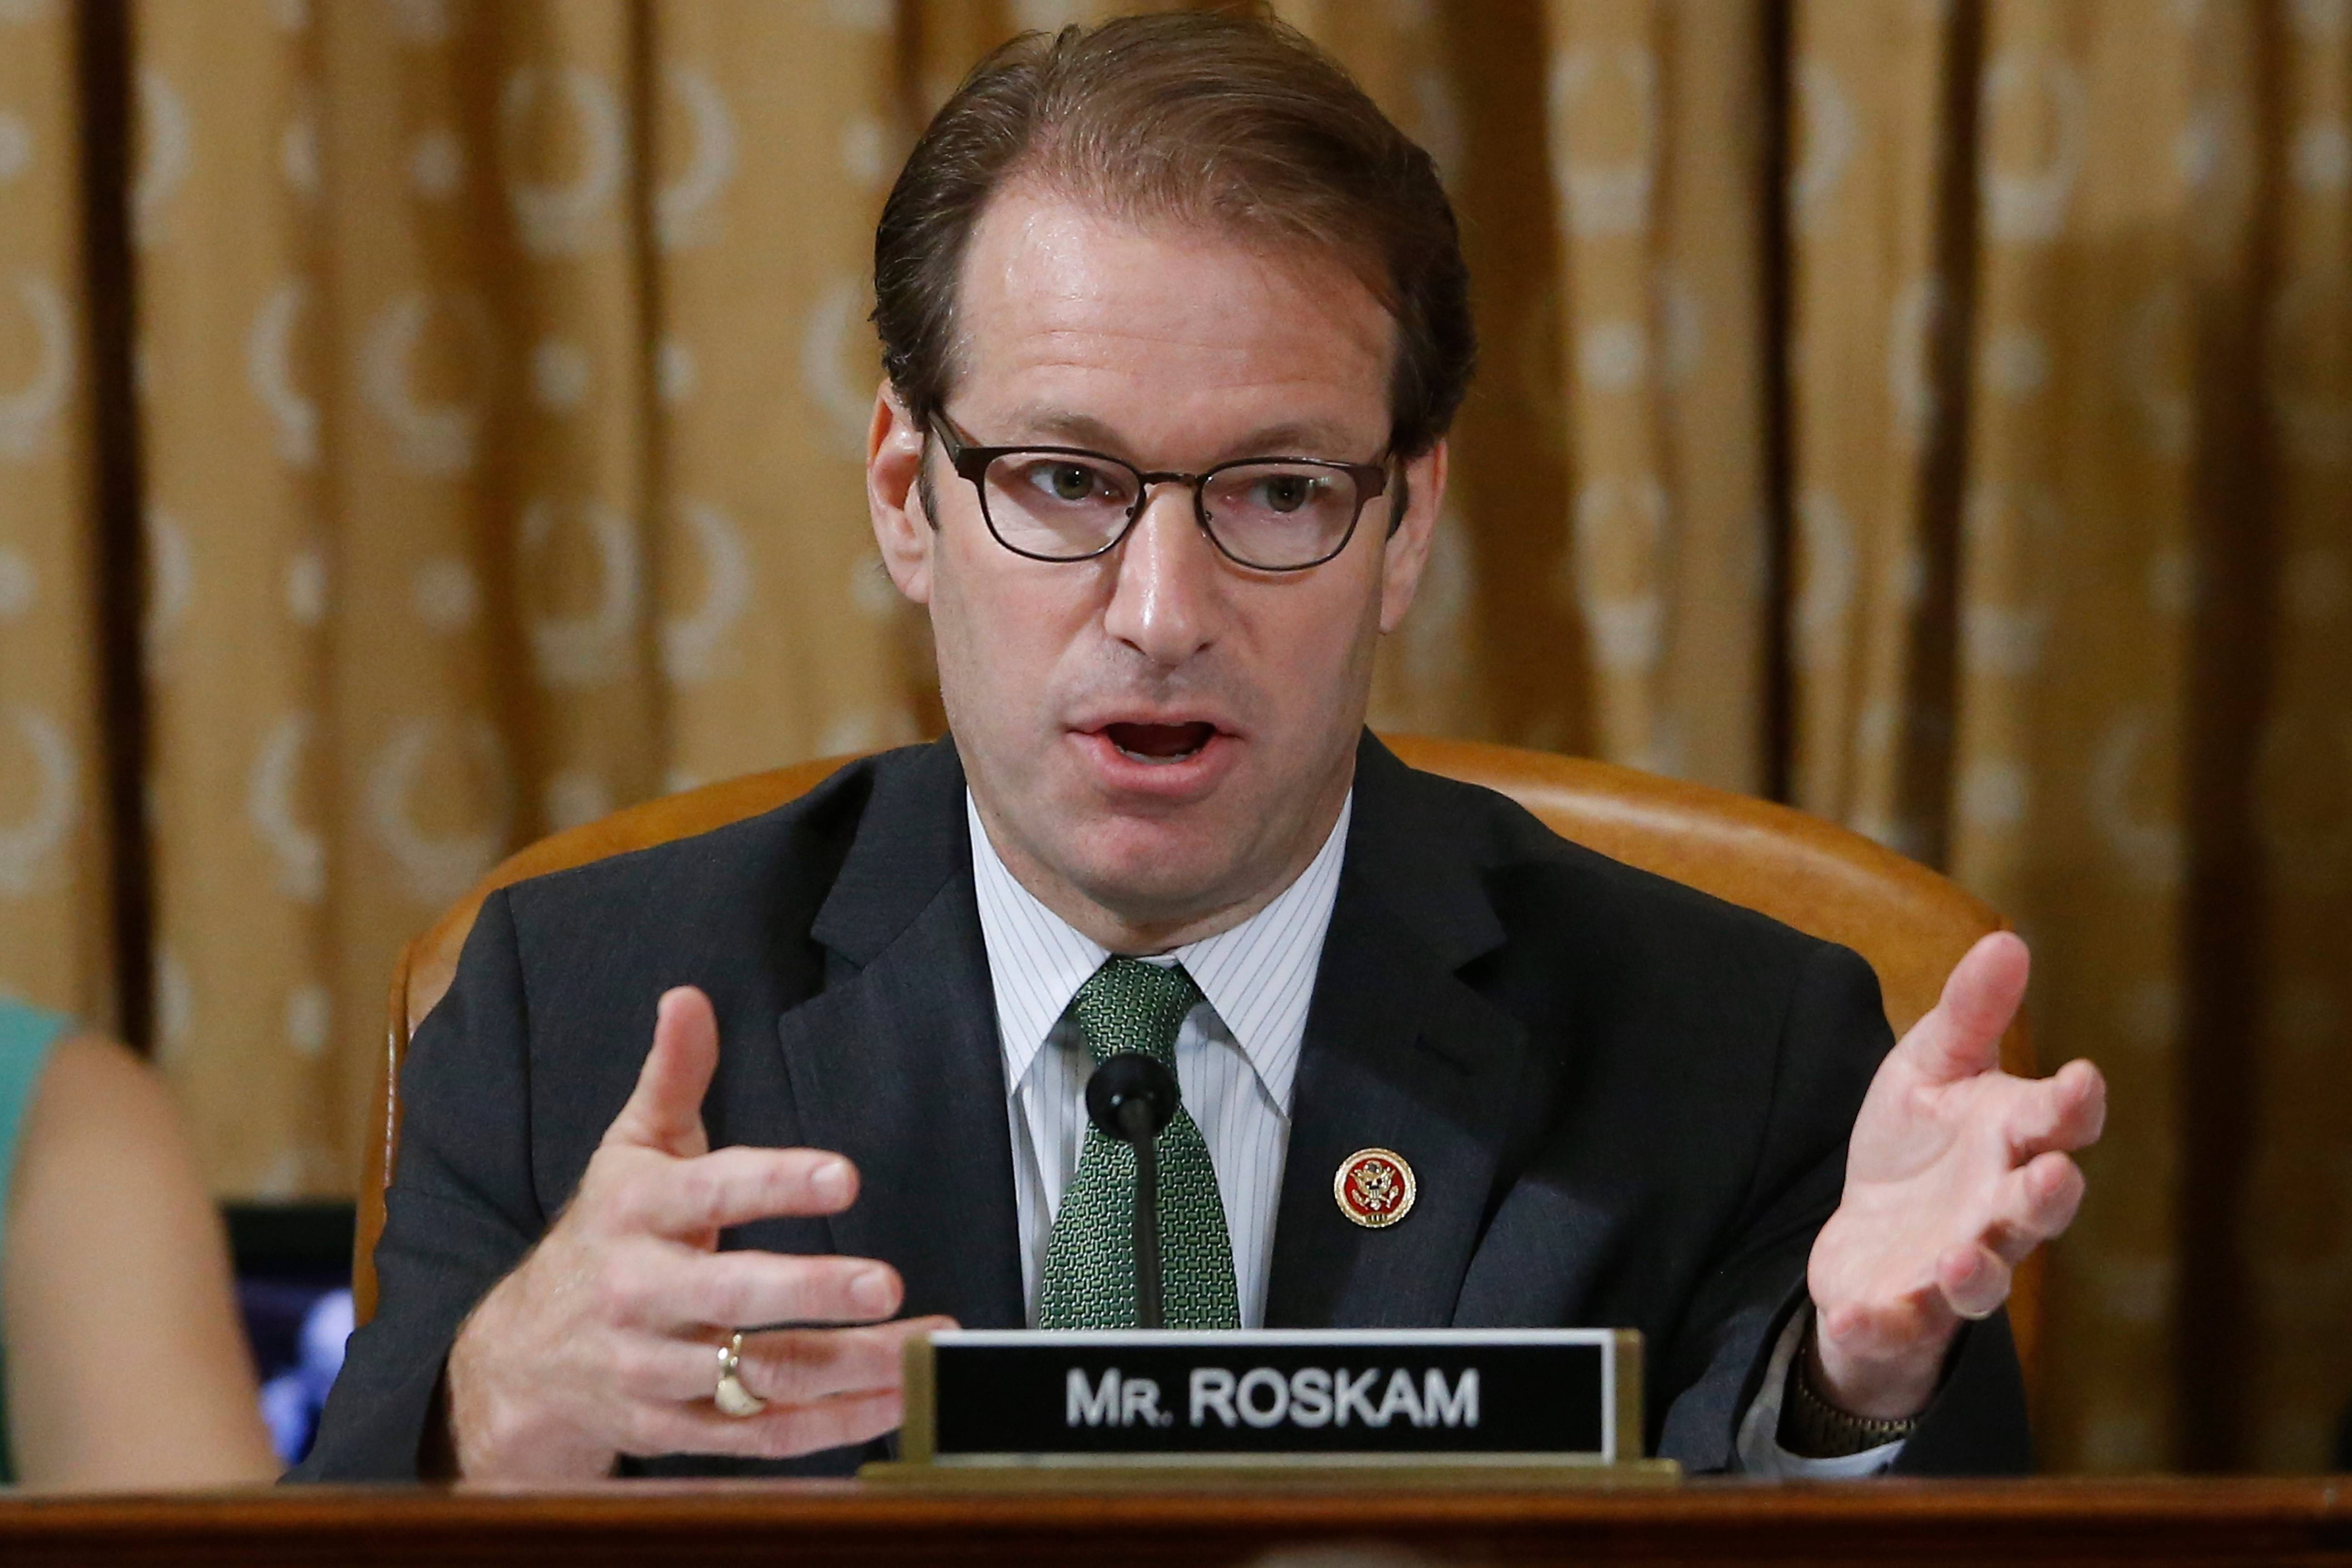 Lester: Roskam won't say where he stood on ethics vote